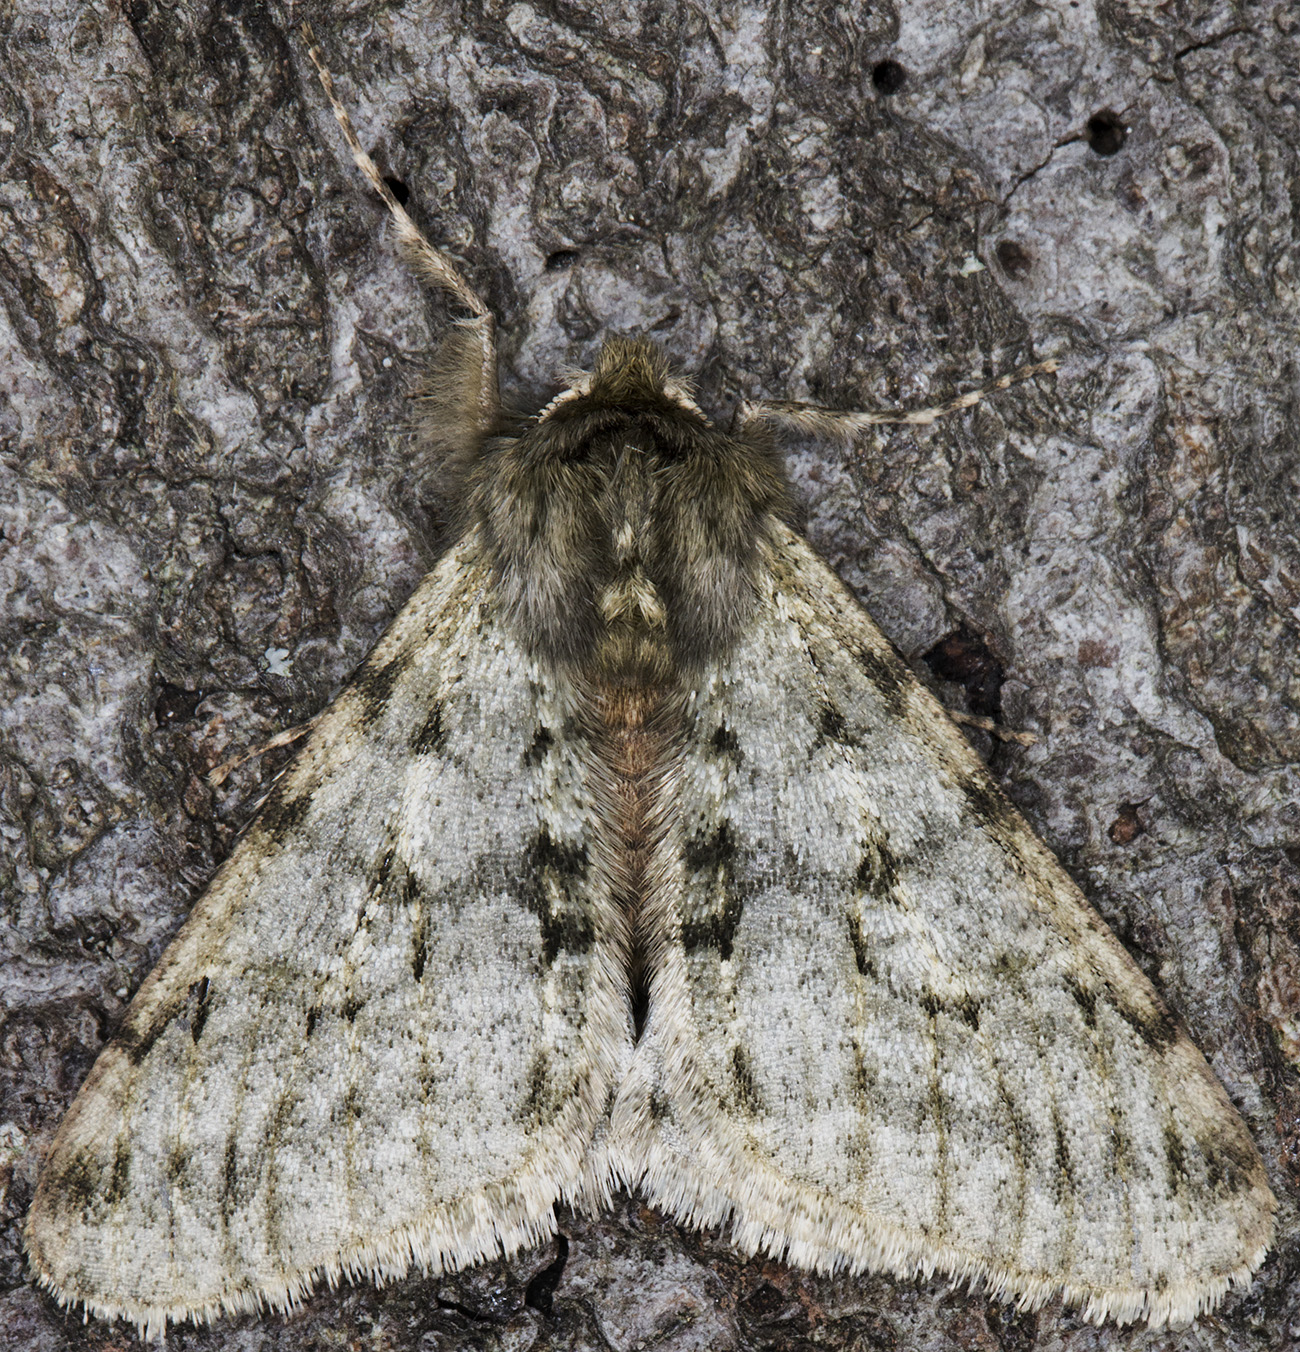 Pale Brindled Beauty,  Phigalia pilosana.  Hayes, 14 February 2015